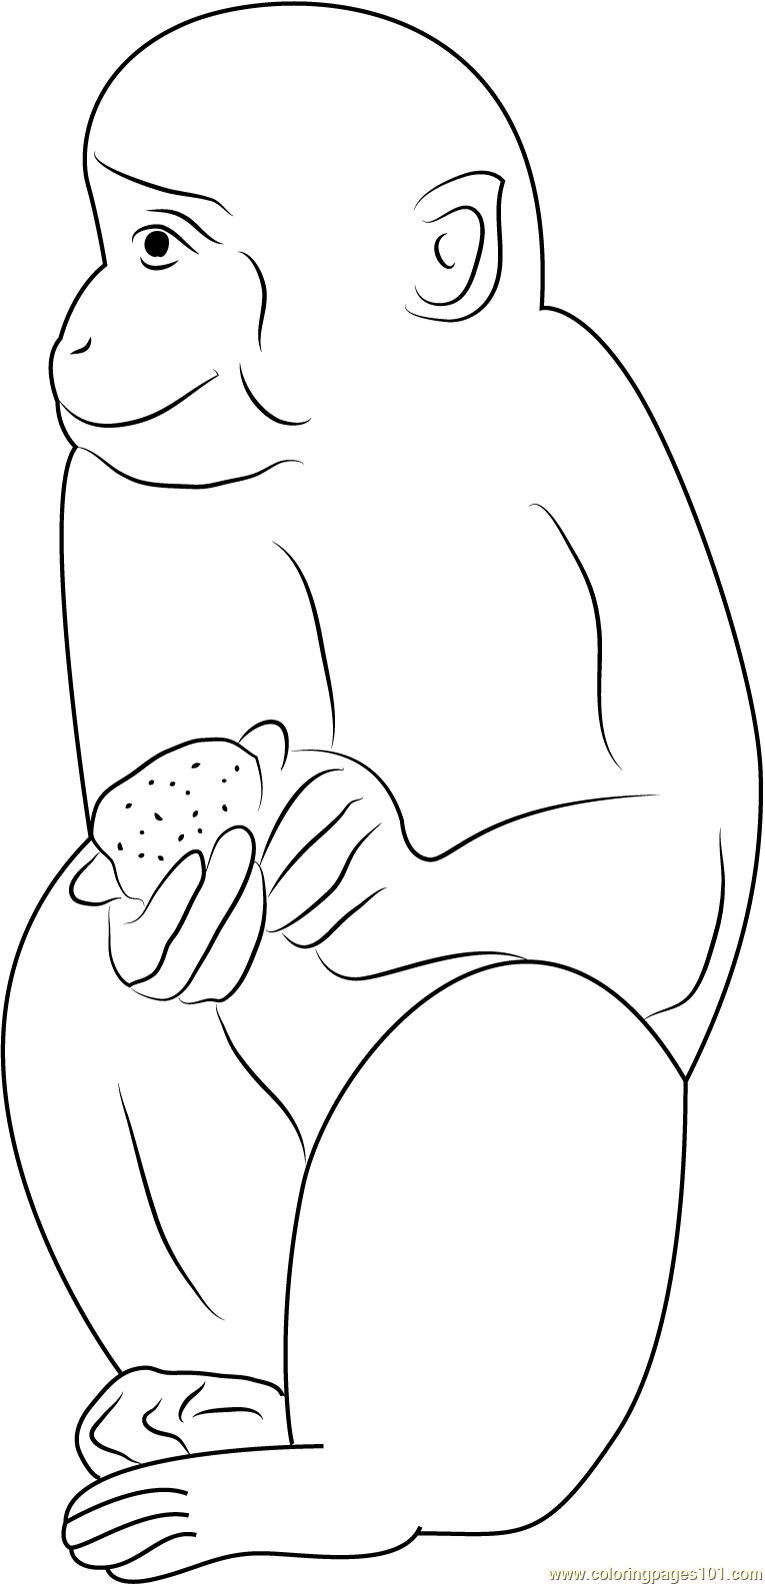 Indian Monkey Coloring Page Free